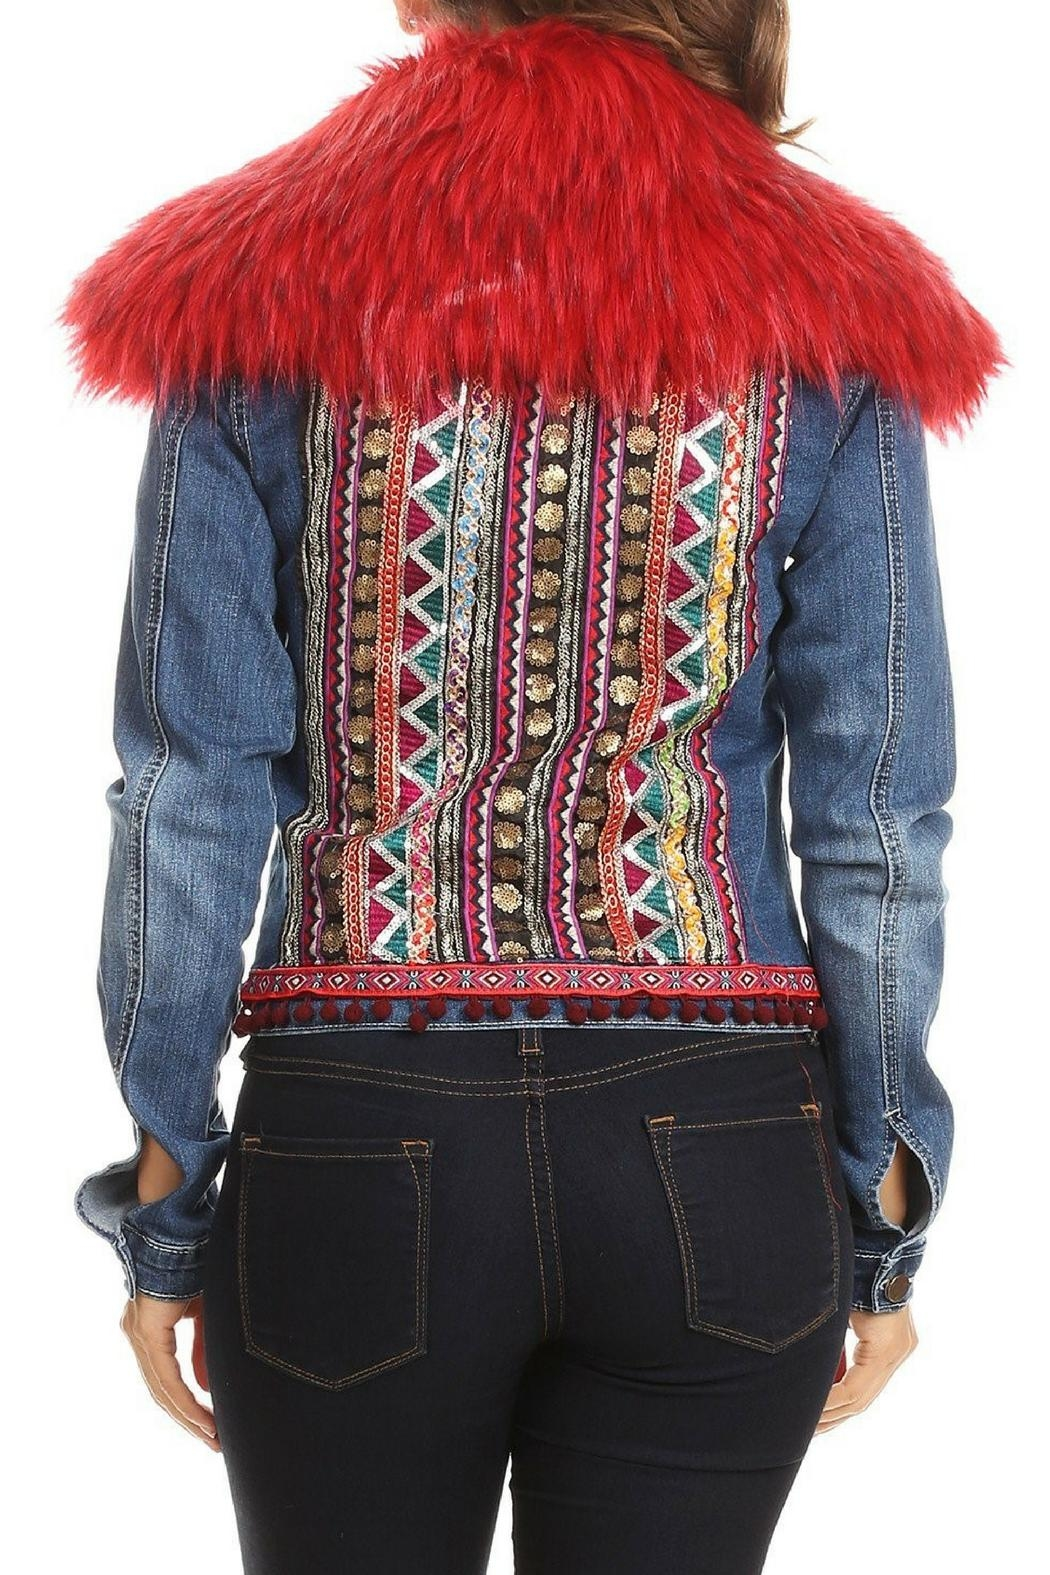 LIFTED Boutique Embroidered Denim Jacket - Main Image